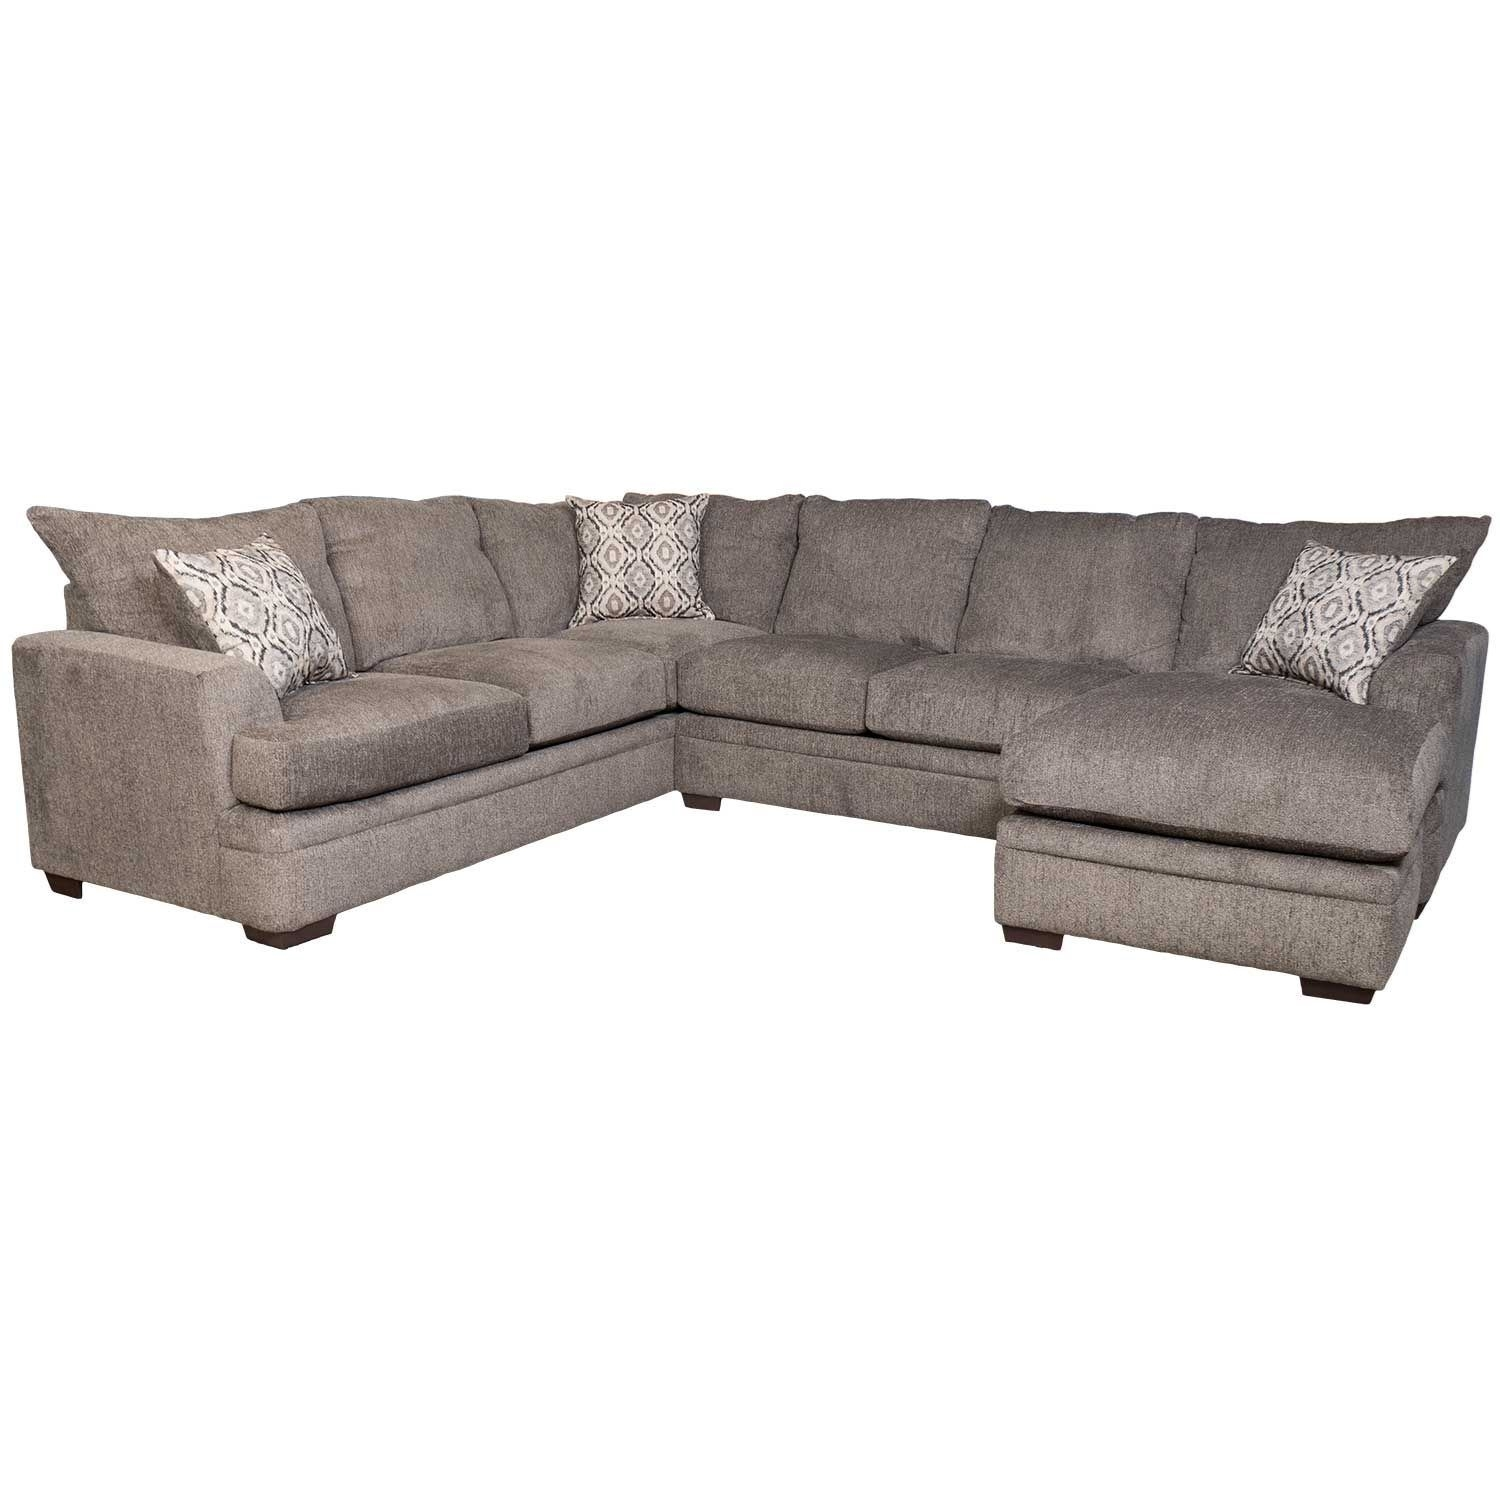 2Pc Pewter Raf Sectional W/chaise C2 68Rc 2Pc | Afw | Afw With Evan 2 Piece Sectionals With Raf Chaise (Gallery 5 of 30)